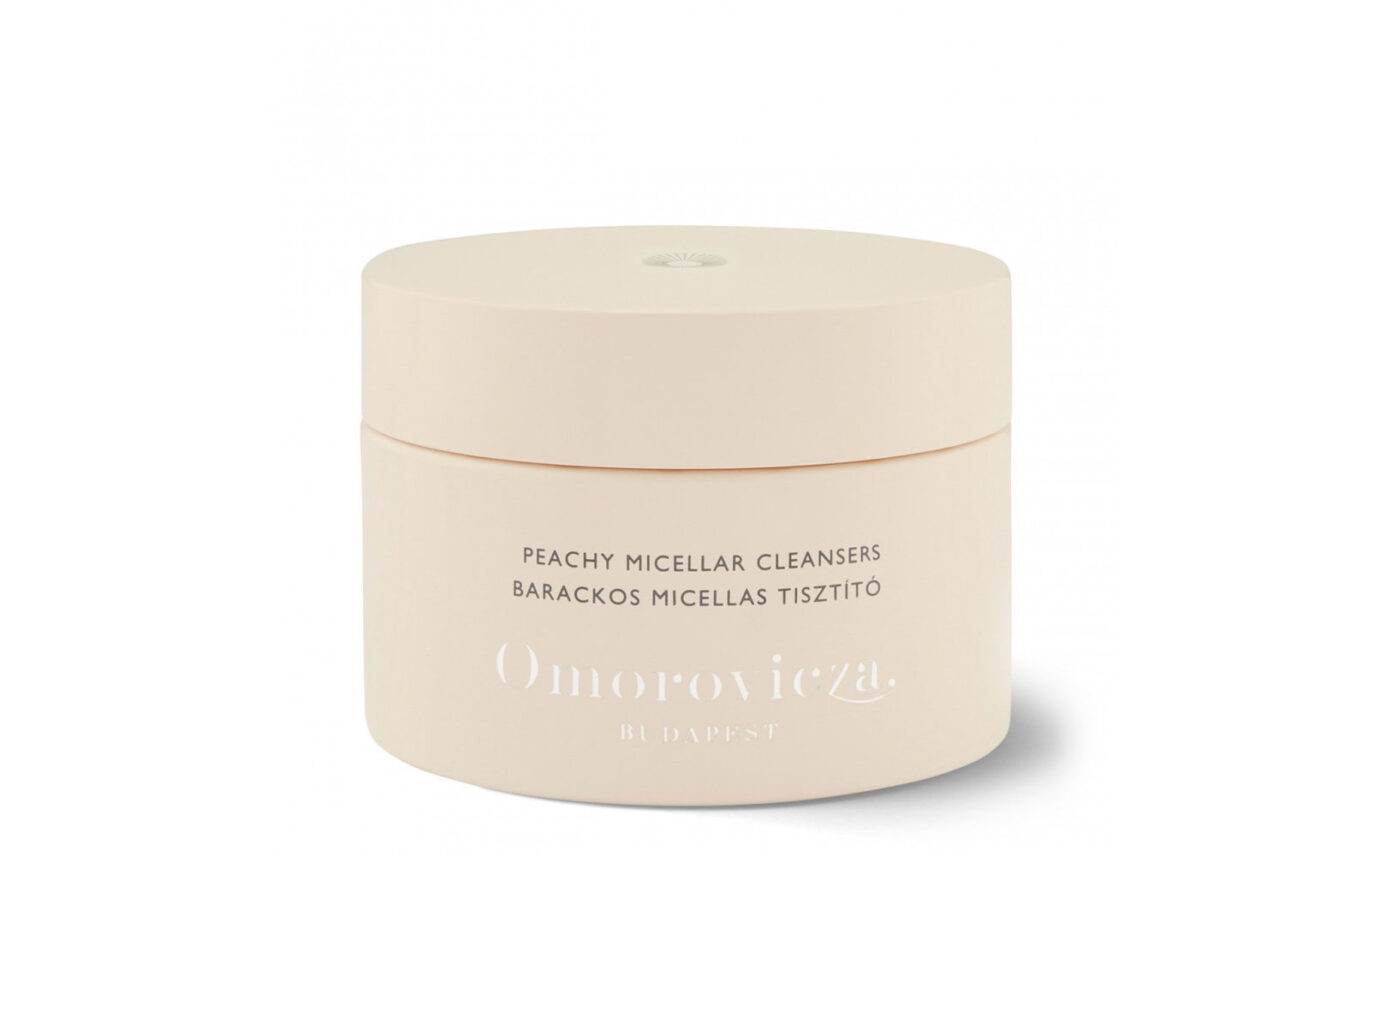 Omorovicza Peachy Micellar Cleansers